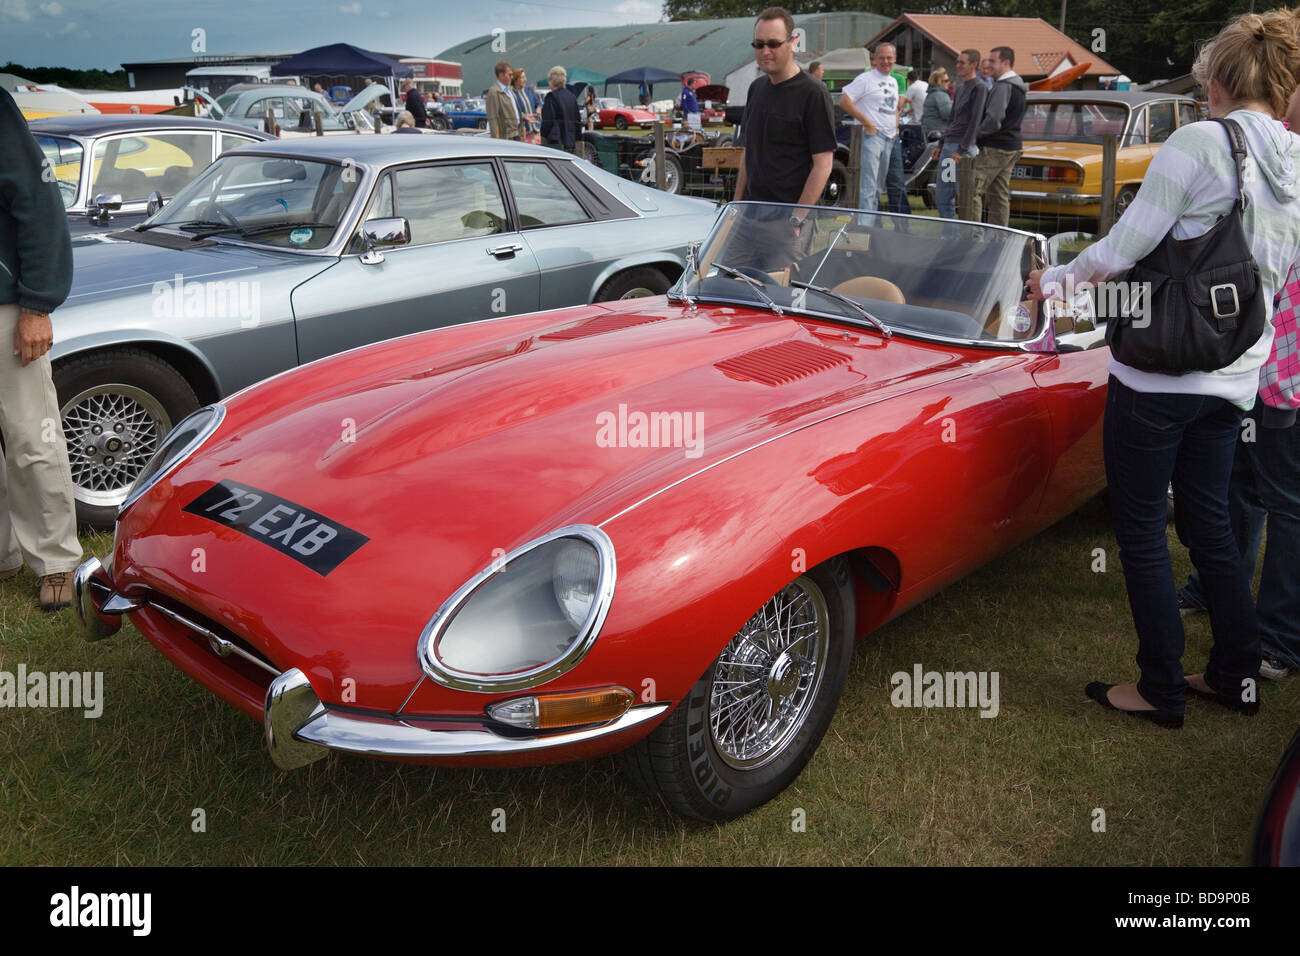 A Vintage Convertible Red E Type Jaguar On Display At An Open Day The Kent Gliding Club In England UK